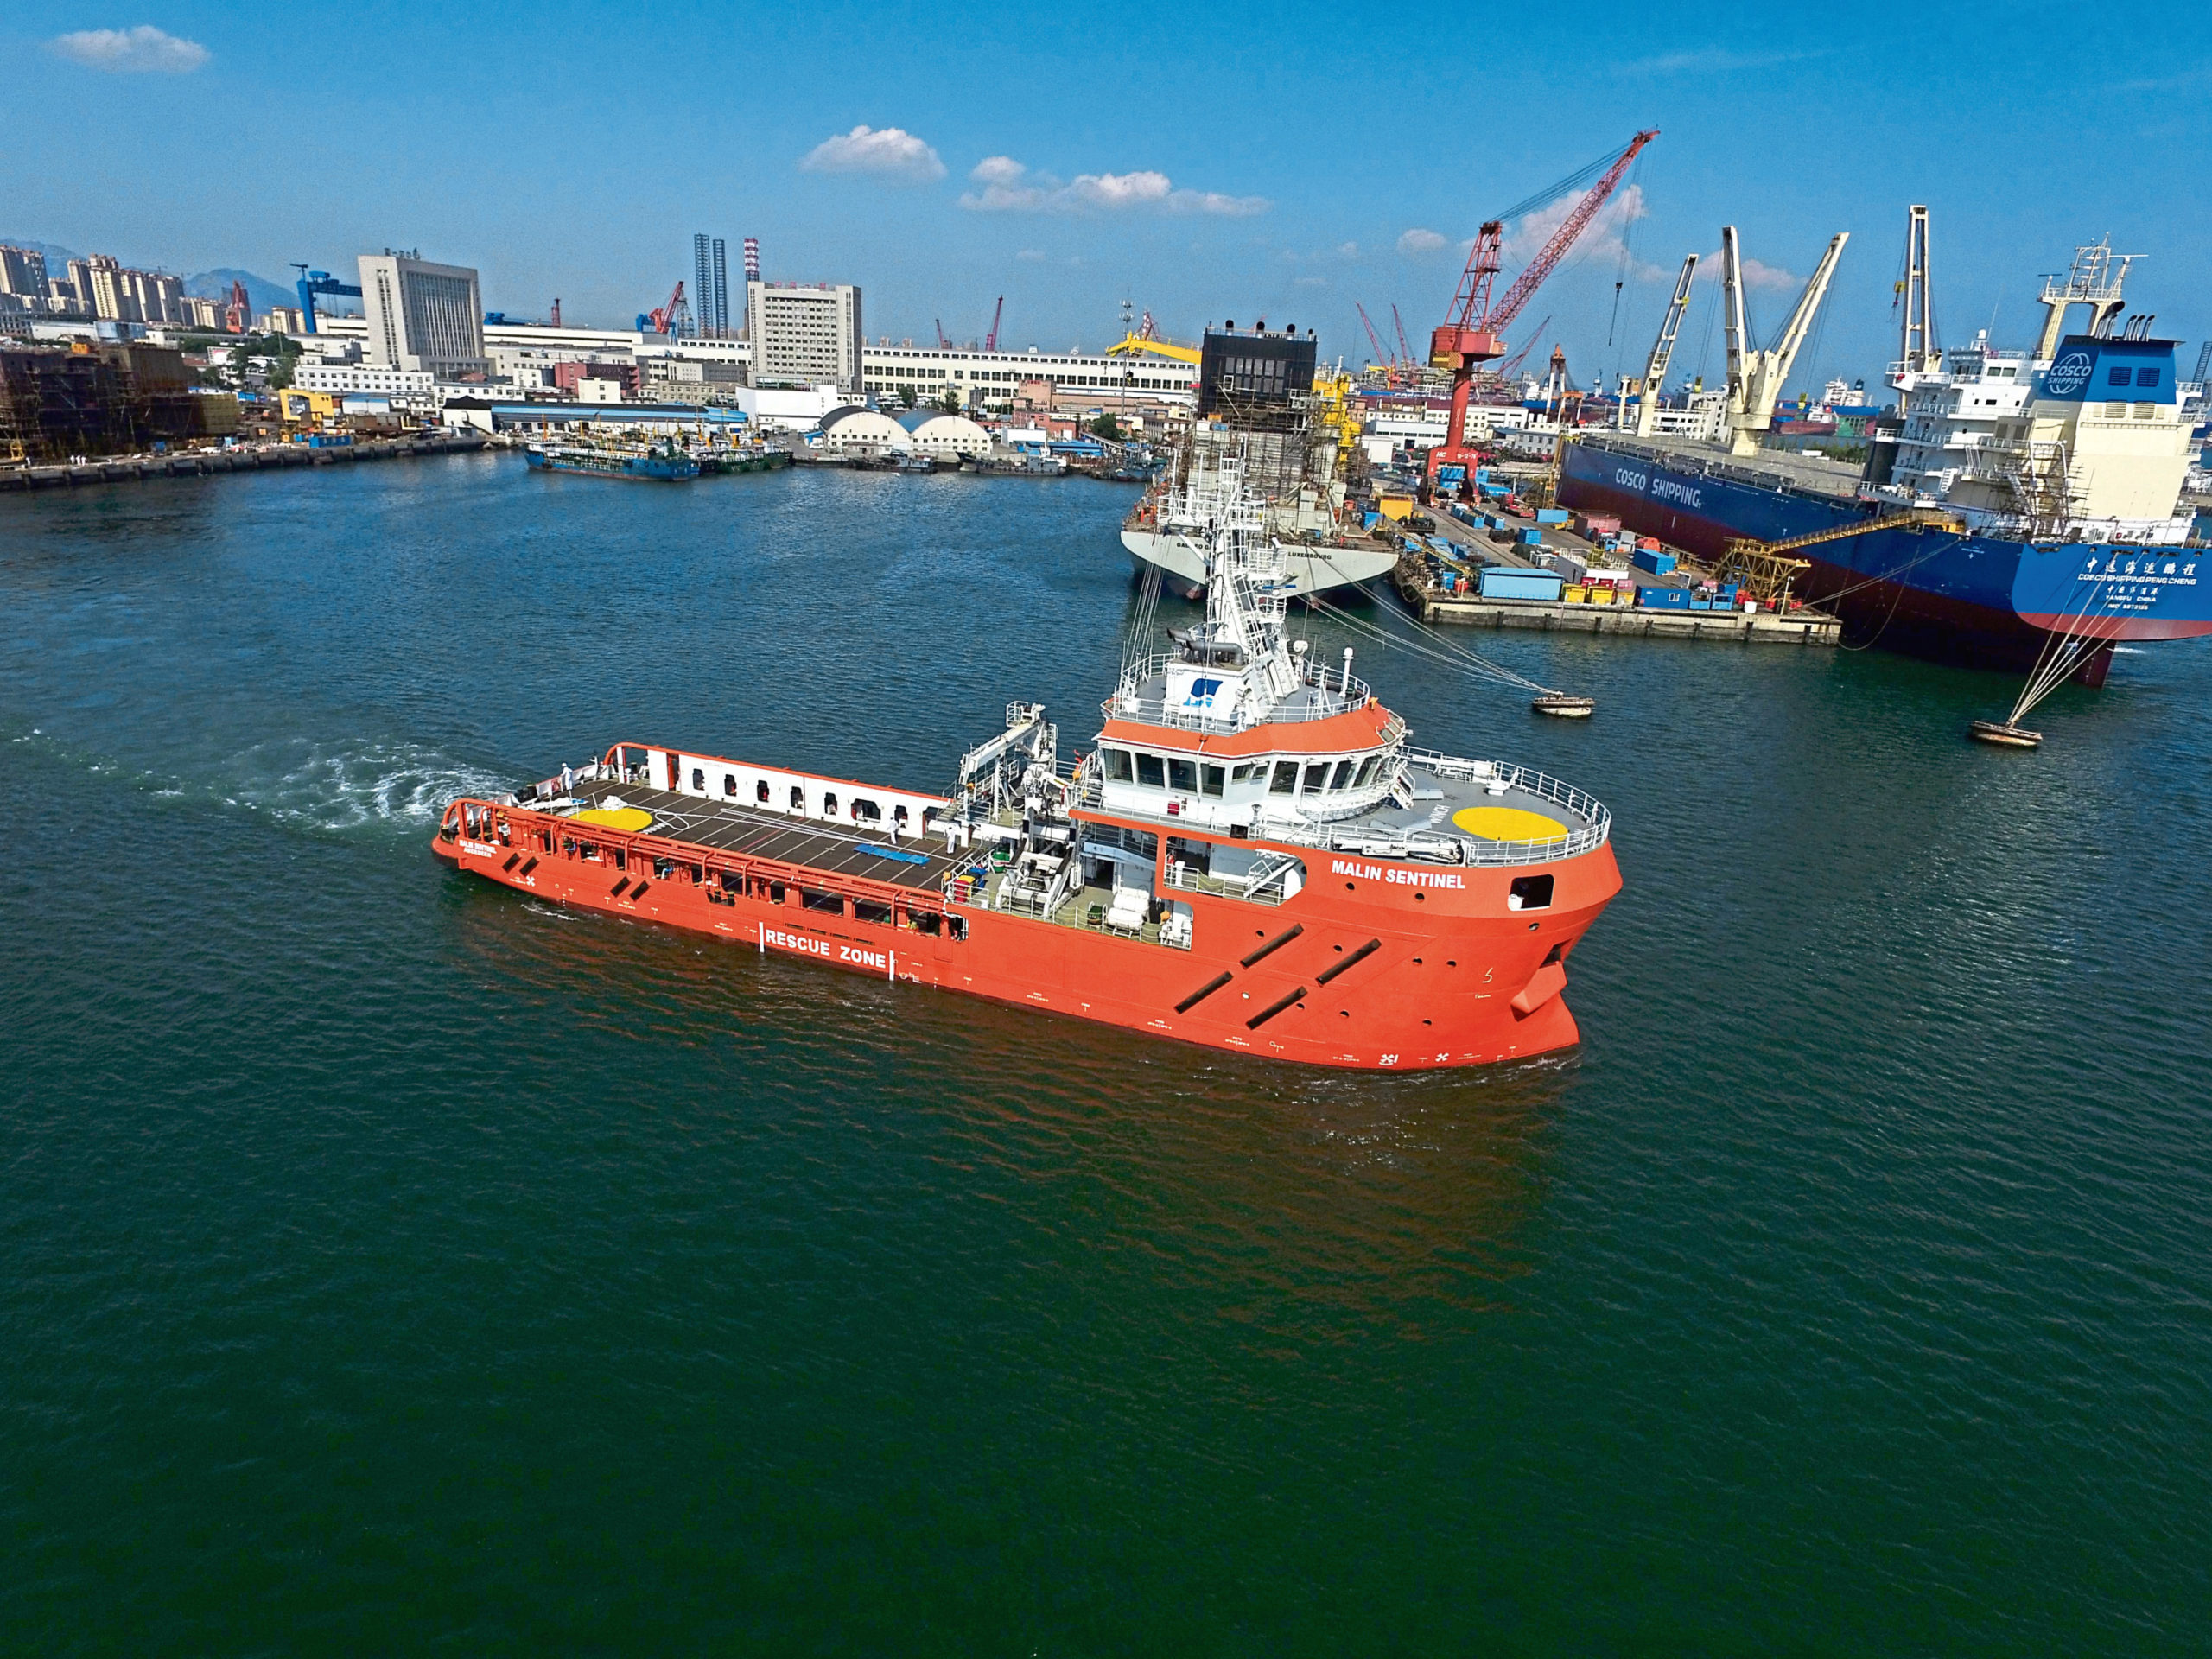 The Malin Sentinel leaving Dalian Port in China en route for Aberdeen via Singapore and the Suez Canal  Handout from Tricker Communications